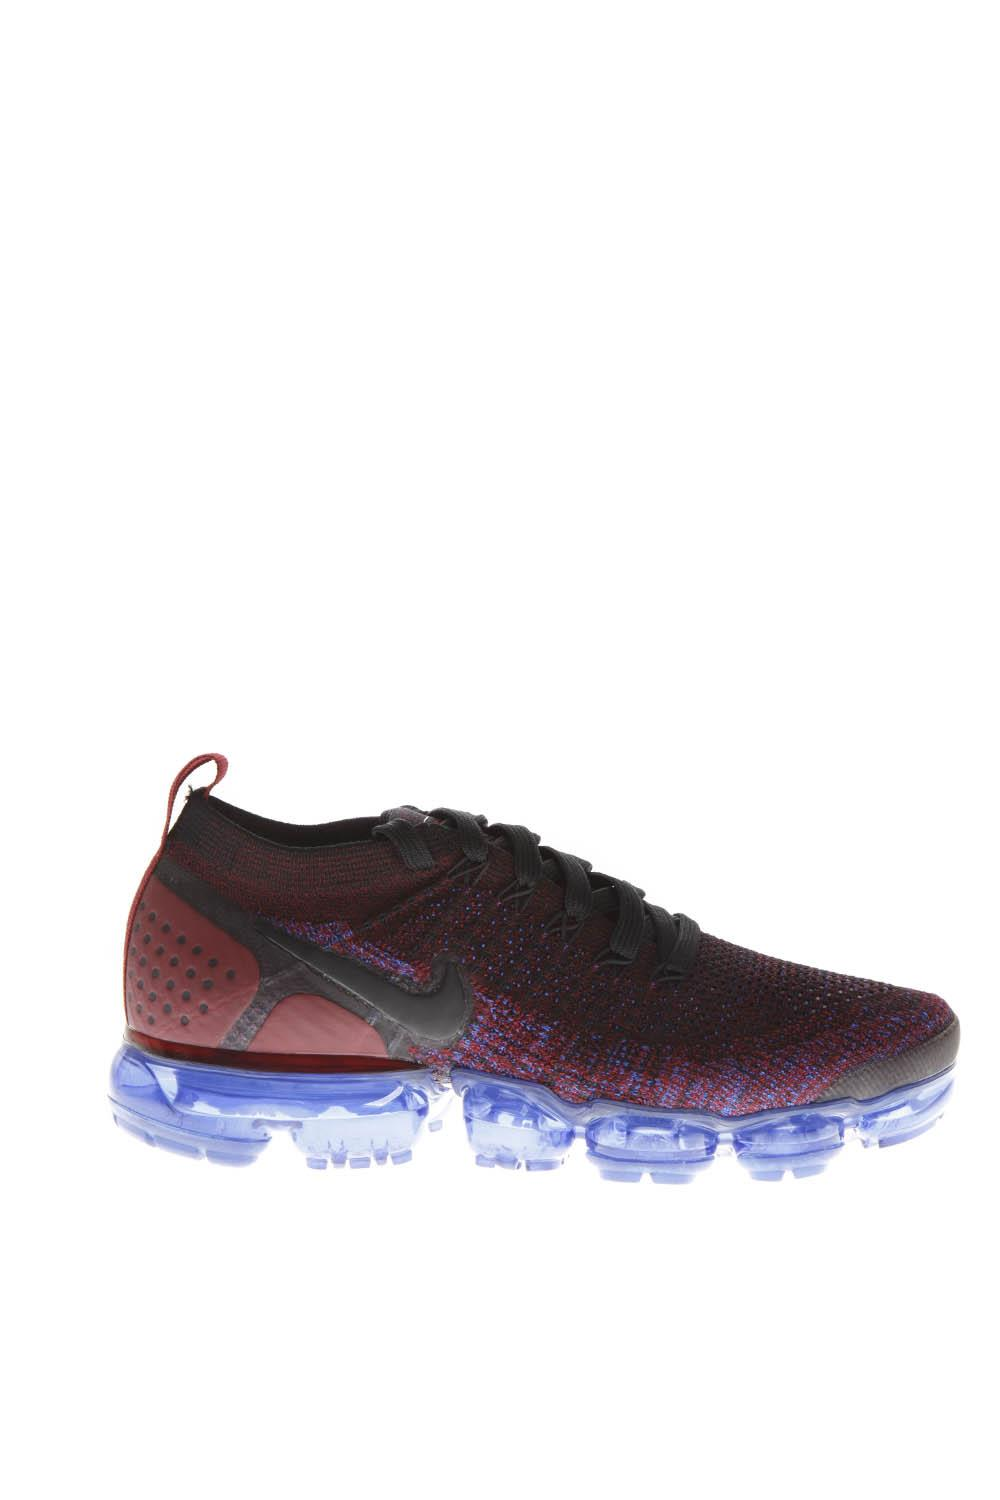 wholesale dealer cadb2 65ce1 AIR VAPORMAX BLUE & BURGUNDY FABRIC SNEAKERS FW 2018